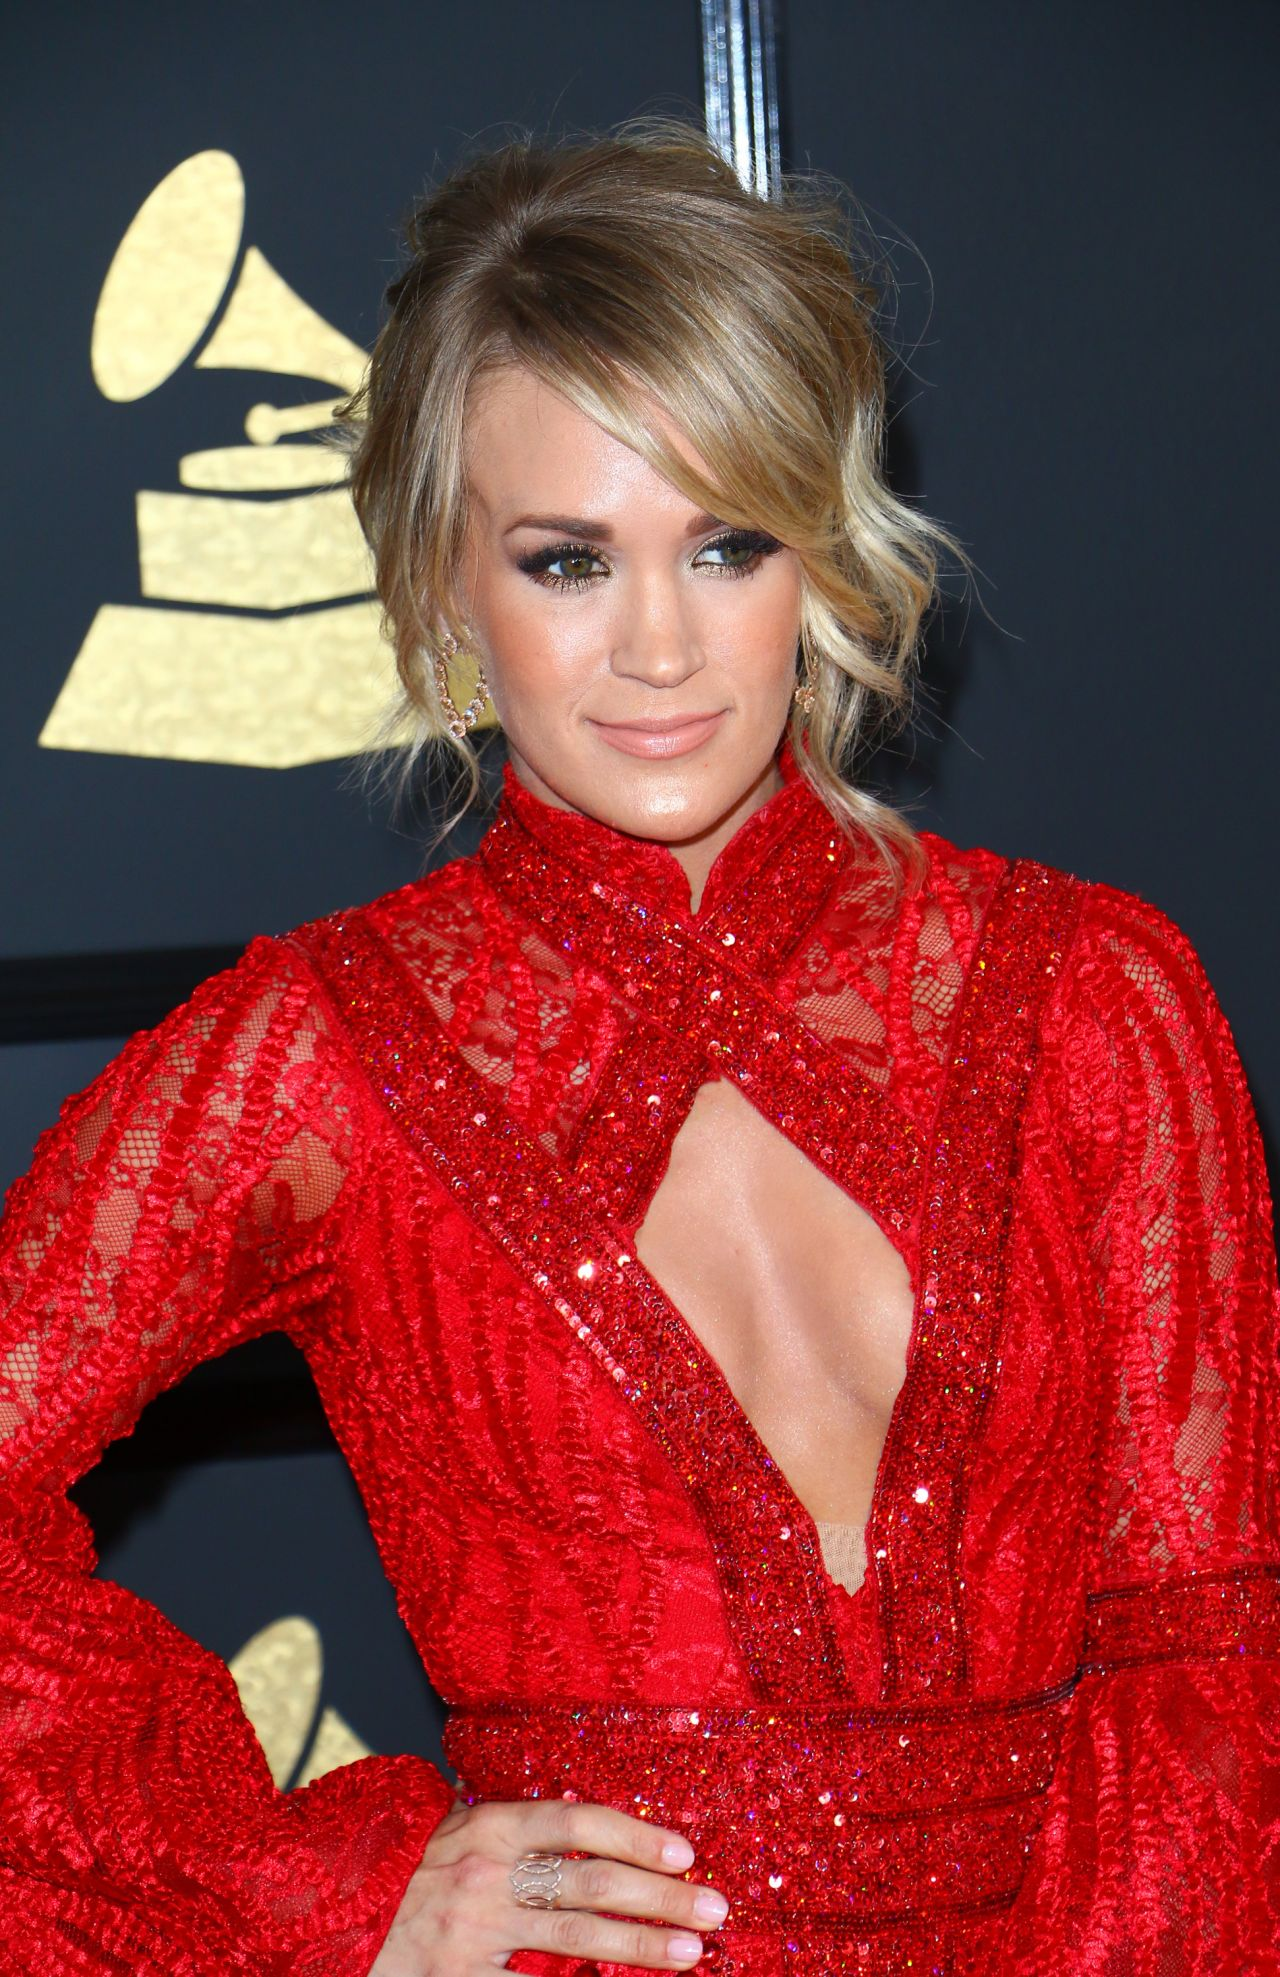 Carrie Underwood On Red Carpet Grammy Awards In Los